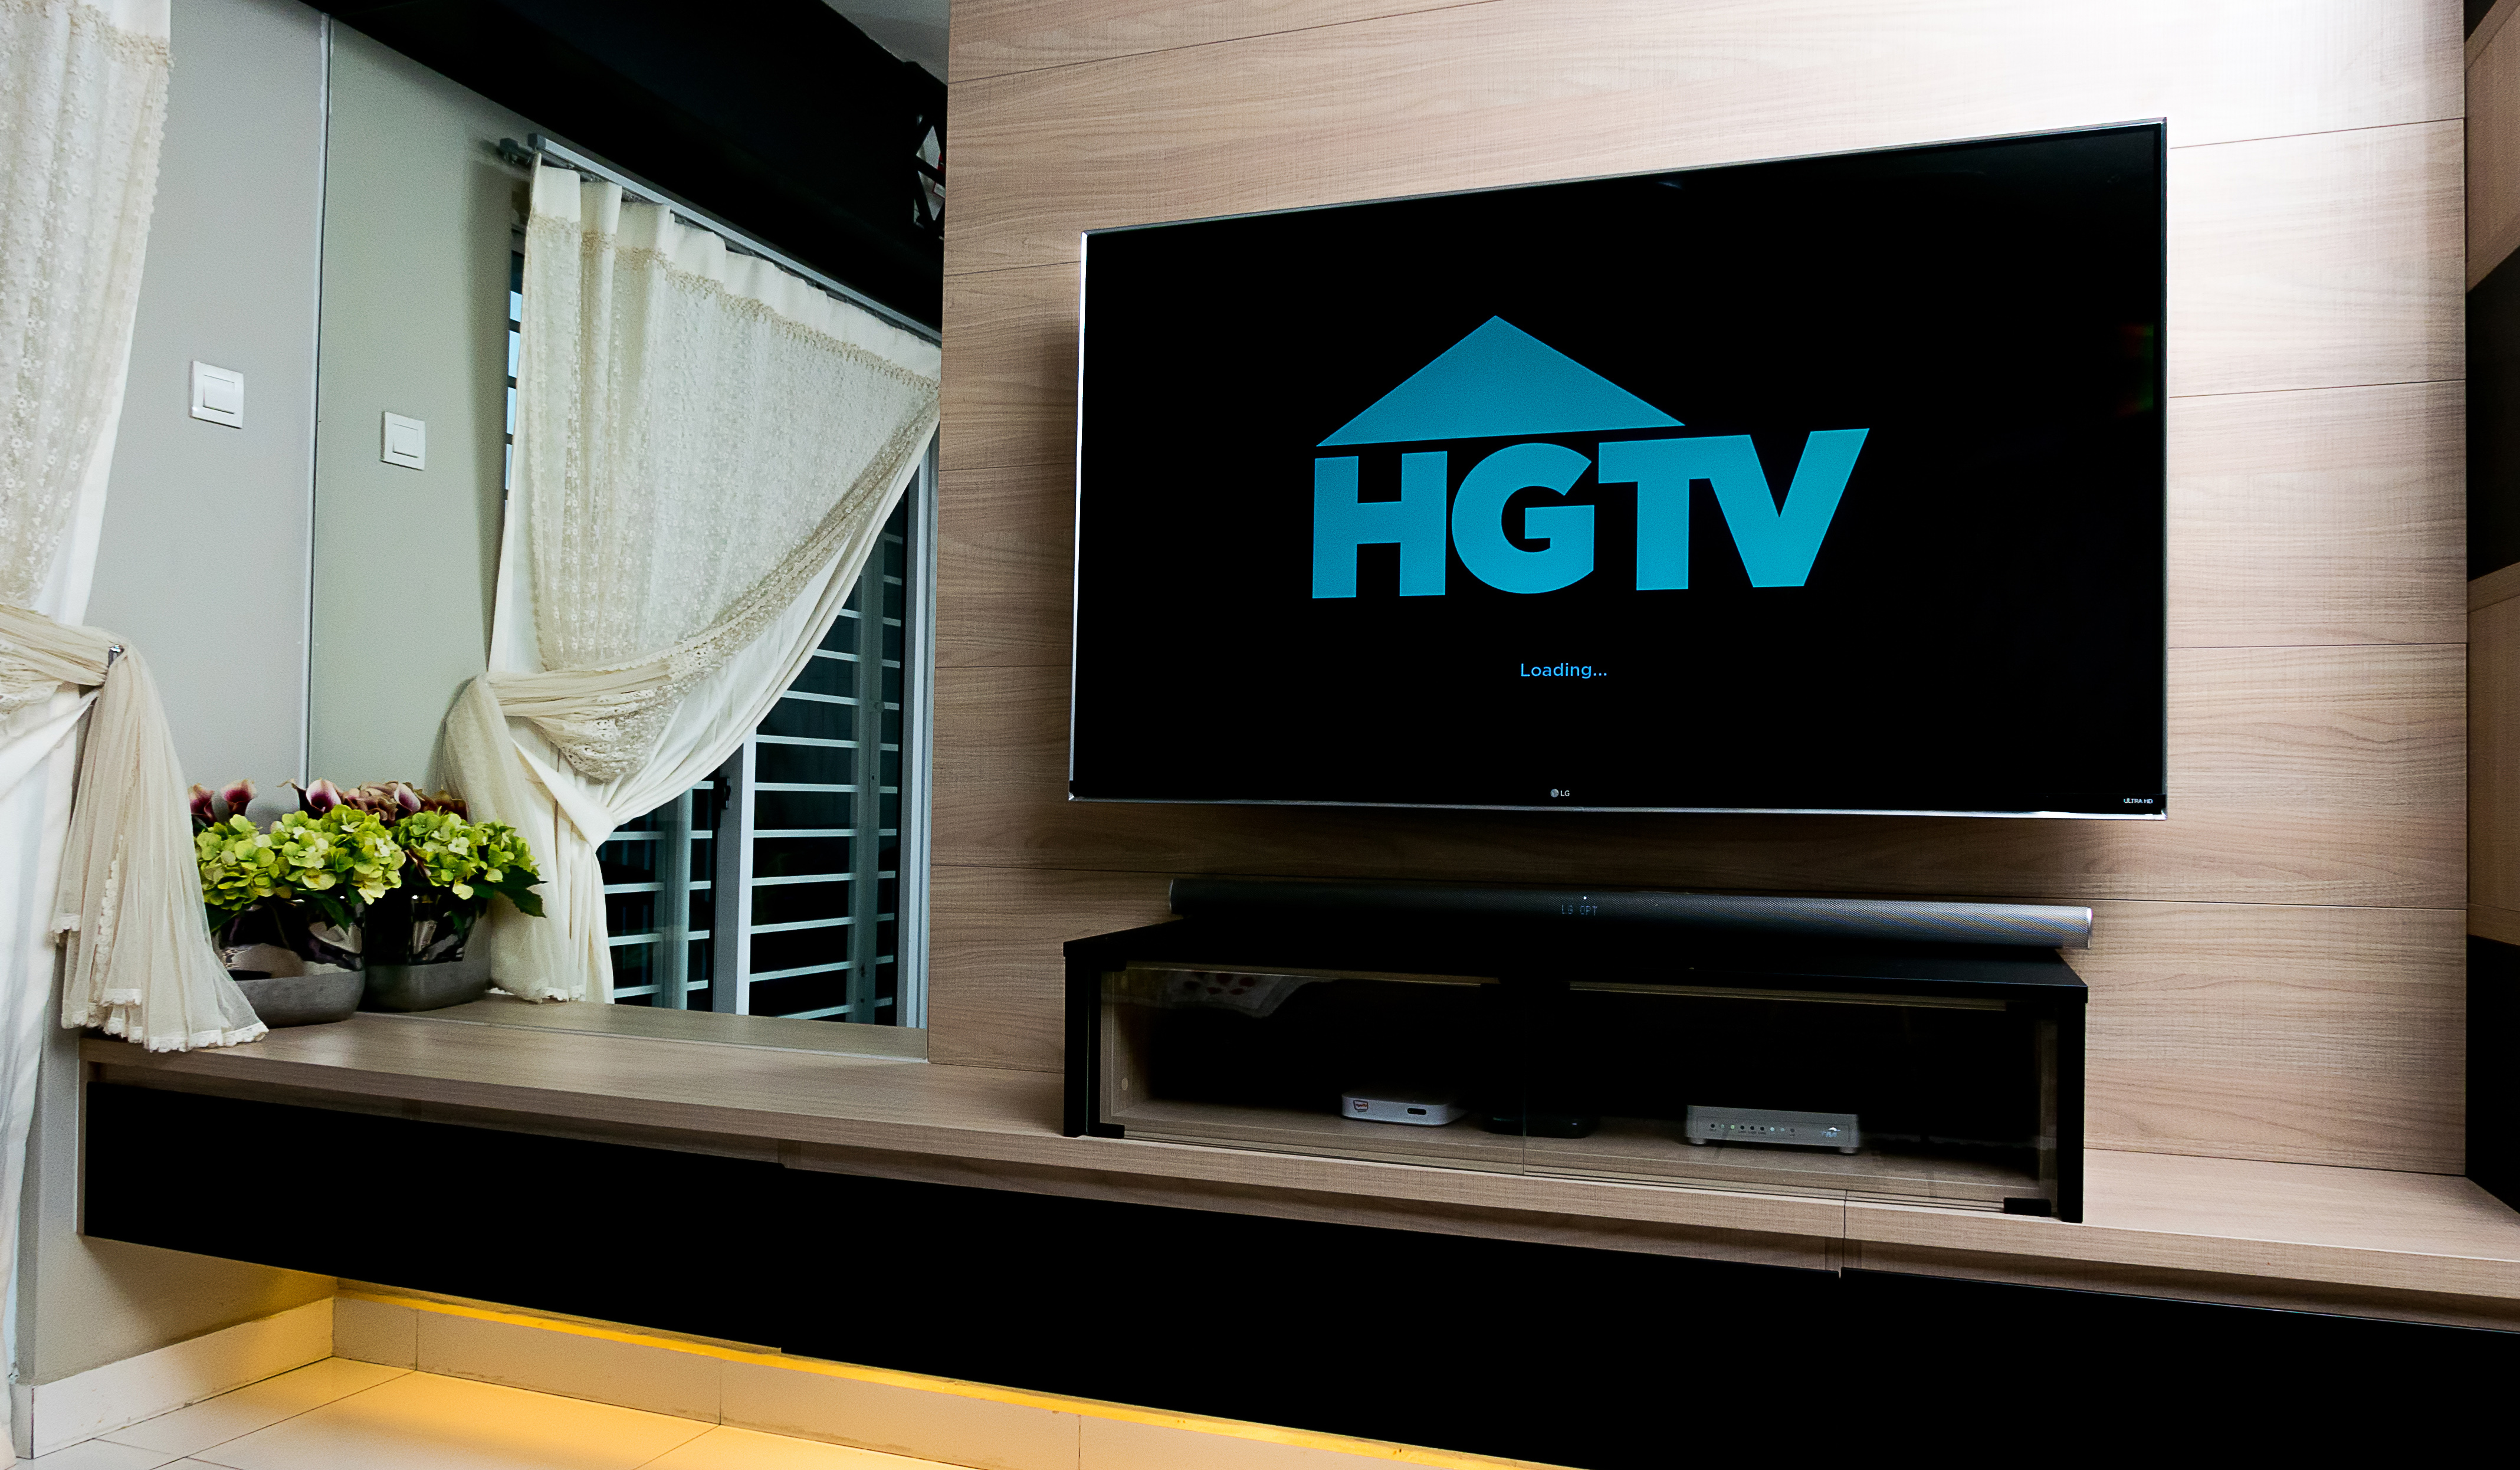 5 Tips to Overcome HGTV-Level Expectations